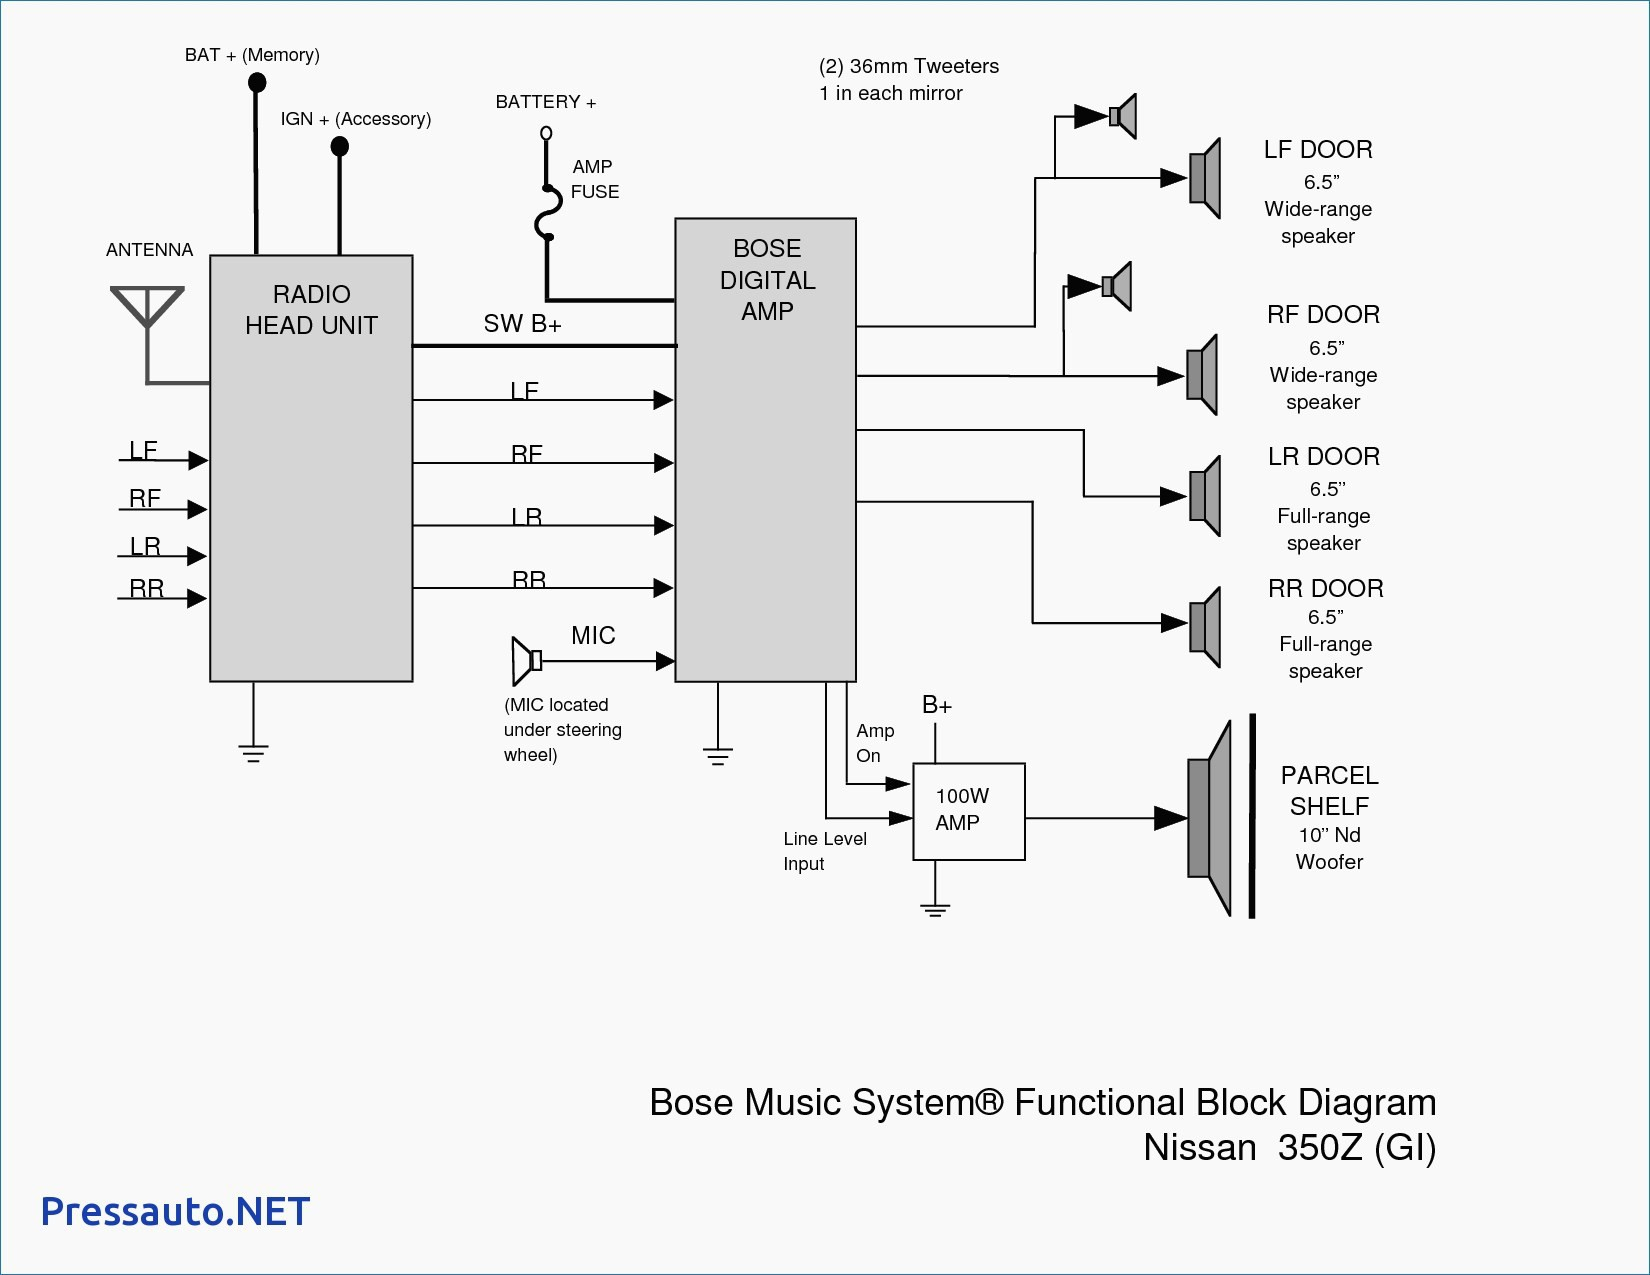 bose car &lifier wiring diagram in depth wiring diagrams u2022 rh heyhan co Bose Car Stereo